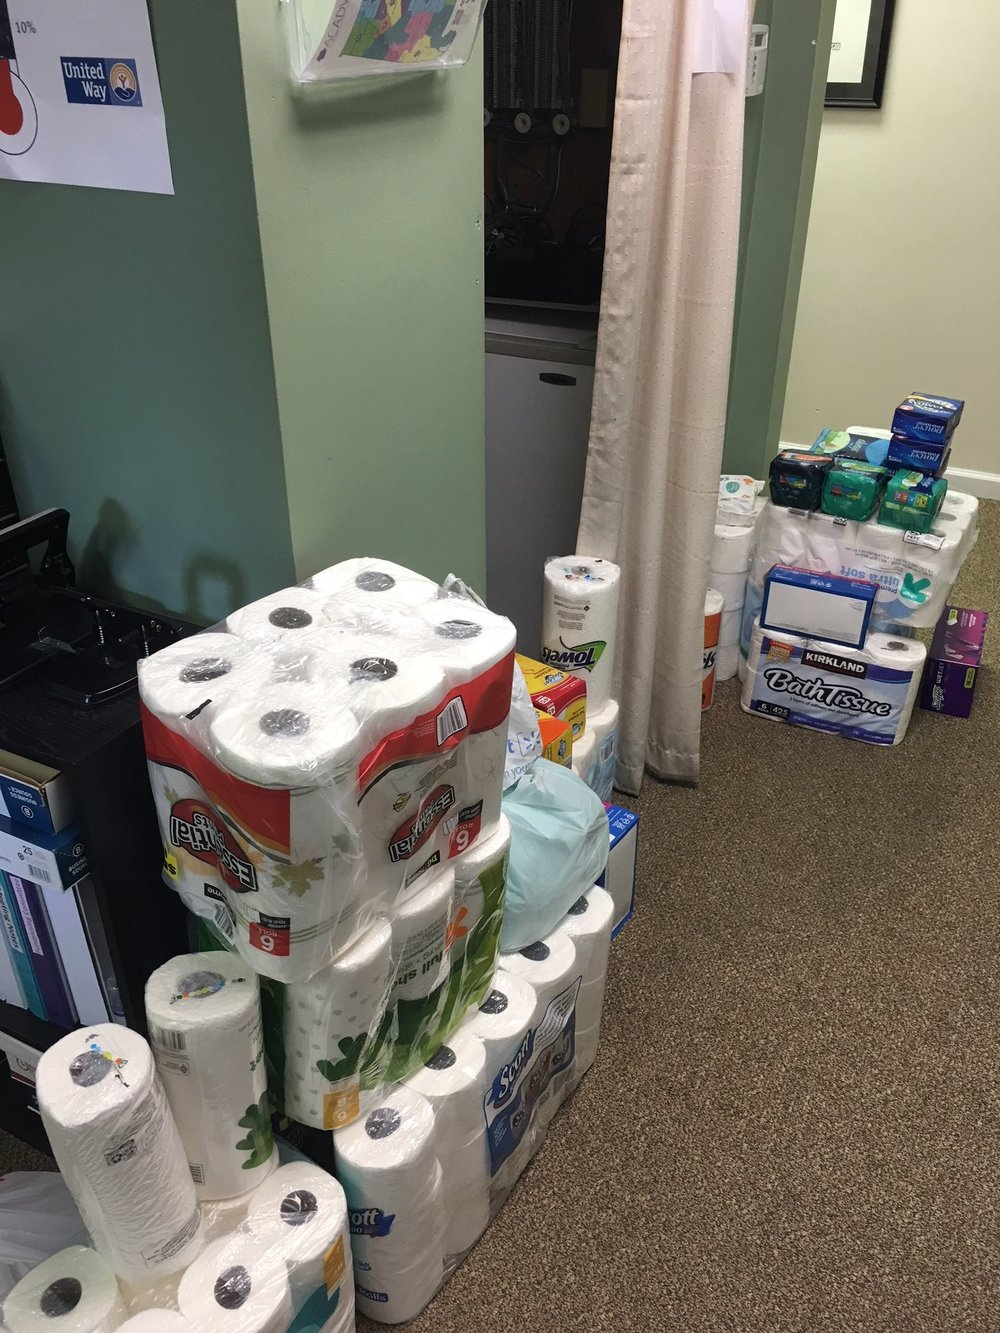 We would like to give a special thanks to the University of Alabama Law School's Dorbin Society for giving us donations in the form of toiletry, and personal care items.